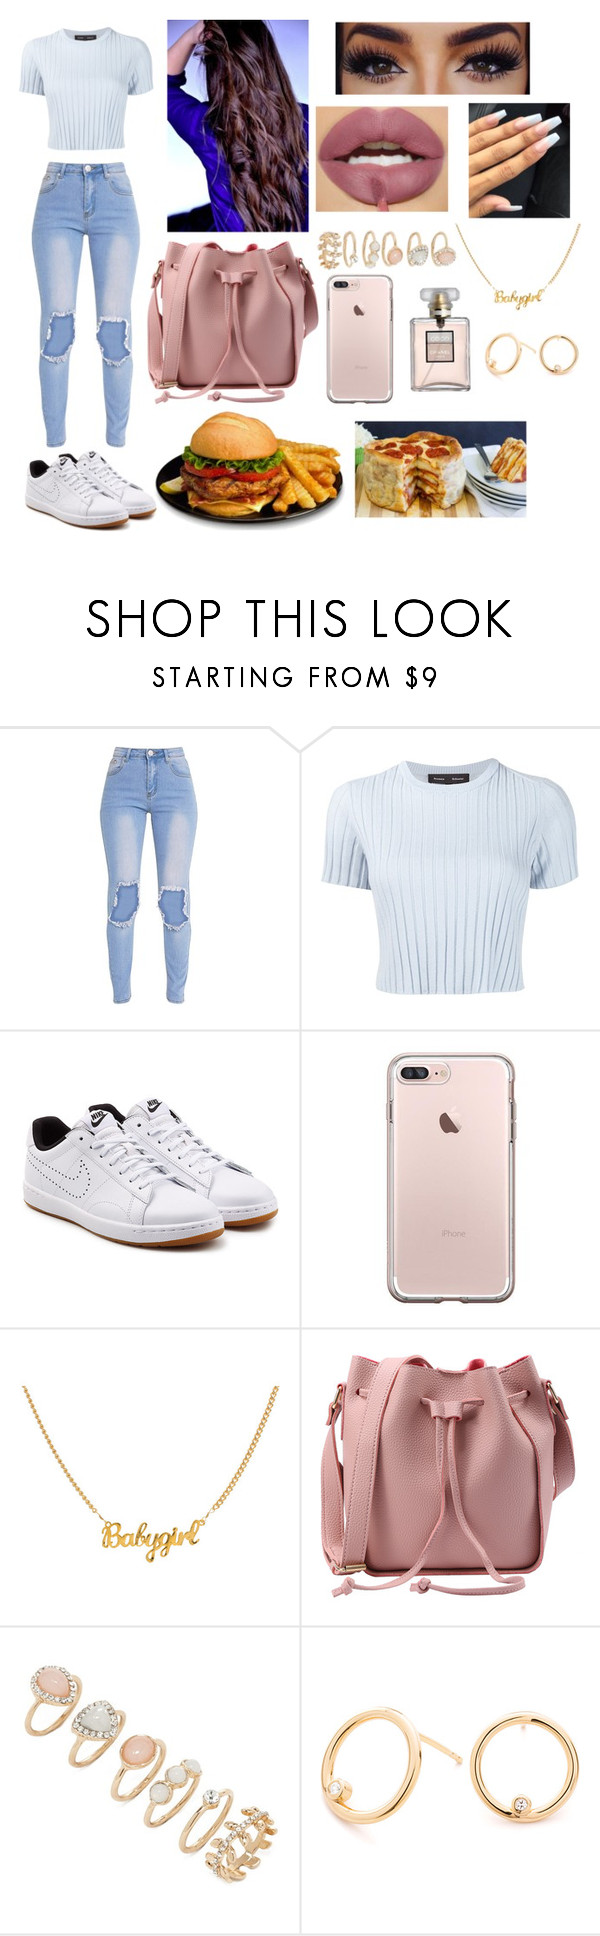 """""""Lunch"""" by jakaya1 ❤ liked on Polyvore featuring Proenza Schouler, NIKE and Forever 21"""